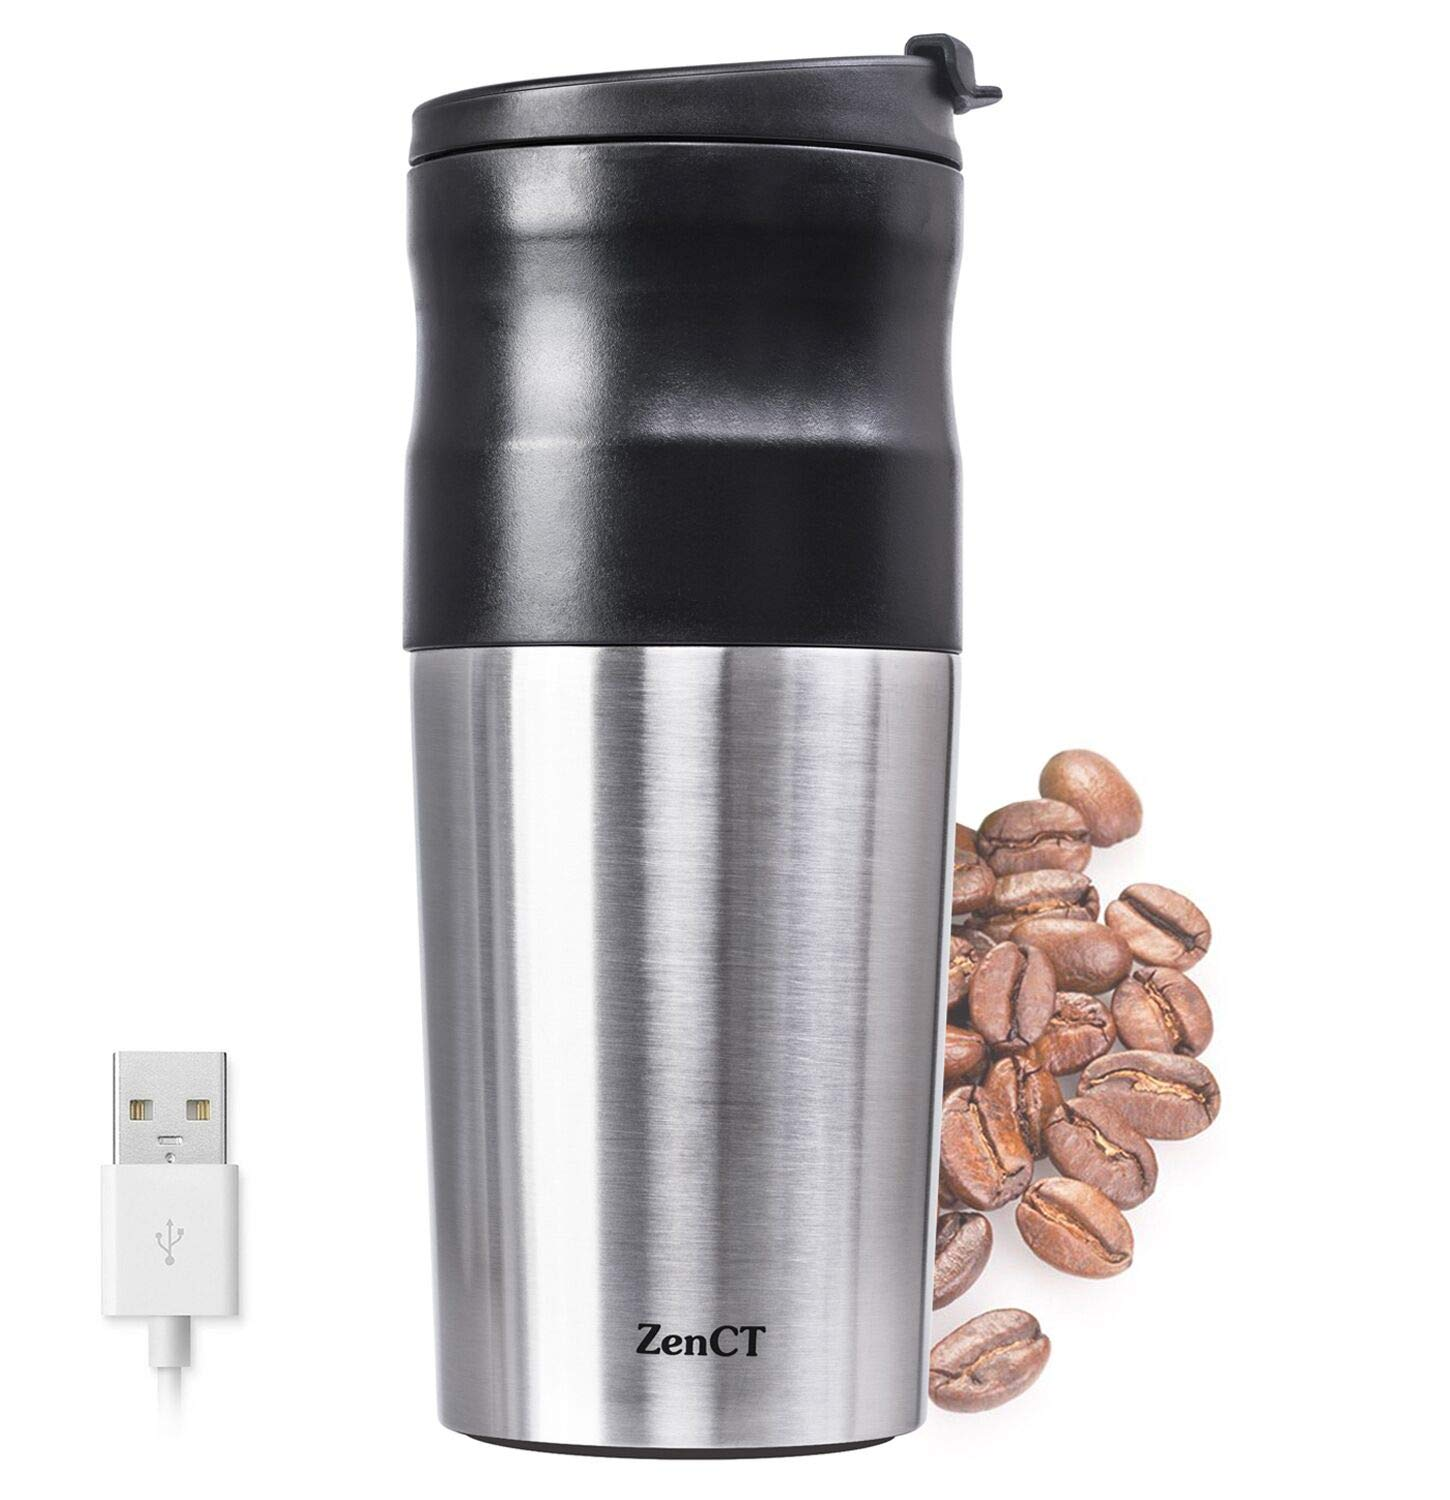 ZenCT Single Cup Coffee Maker, Single Serve Portable Coffee Grinder Automatic Grind and Brew includes USB Chargeable - Reusable Filter - 15 oz Insulated Tumbler